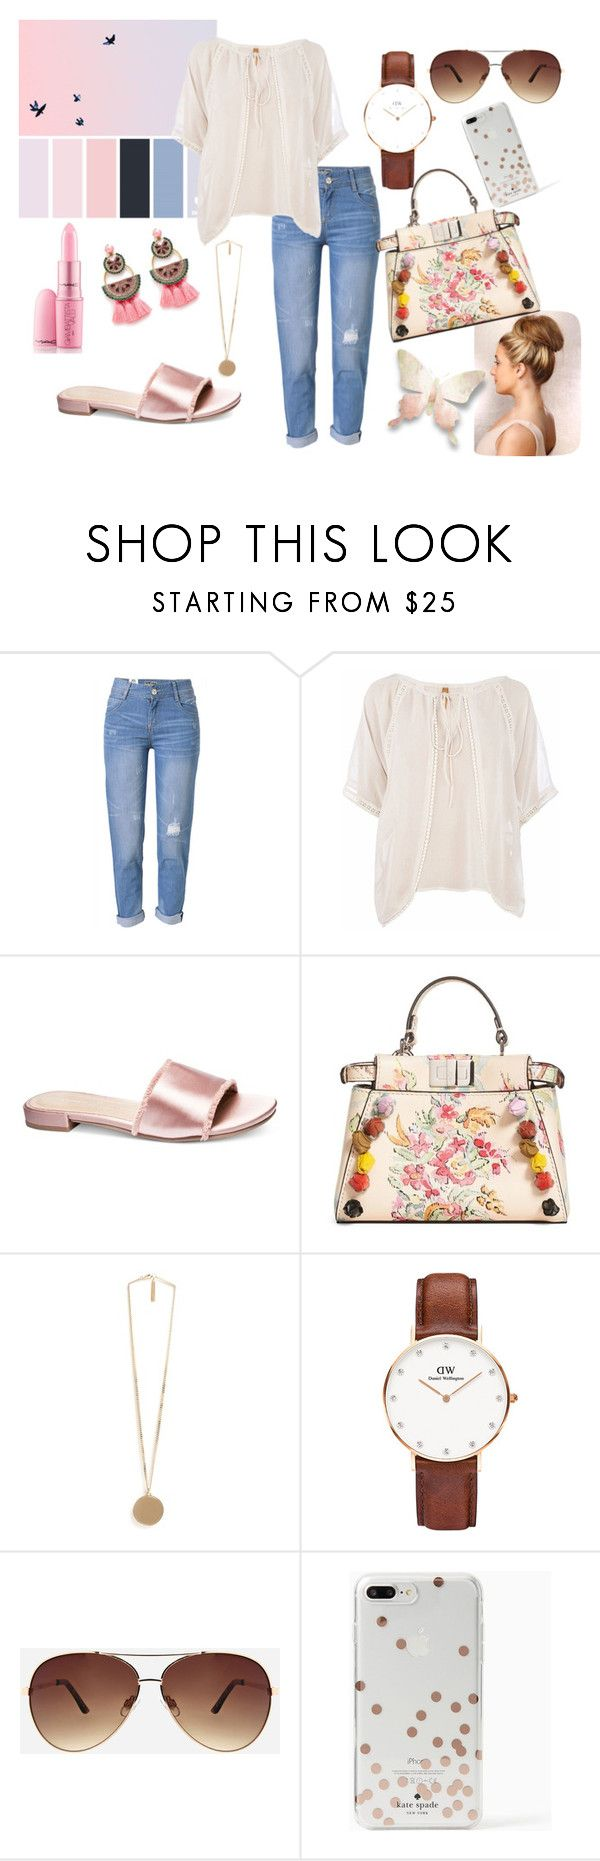 """17.20"" by nicaa on Polyvore featuring moda, WithChic, Conquista, Chinese Laundry, Fendi, Givenchy, Daniel Wellington, Ashley Stewart, Kate Spade e Elizabeth Cole"